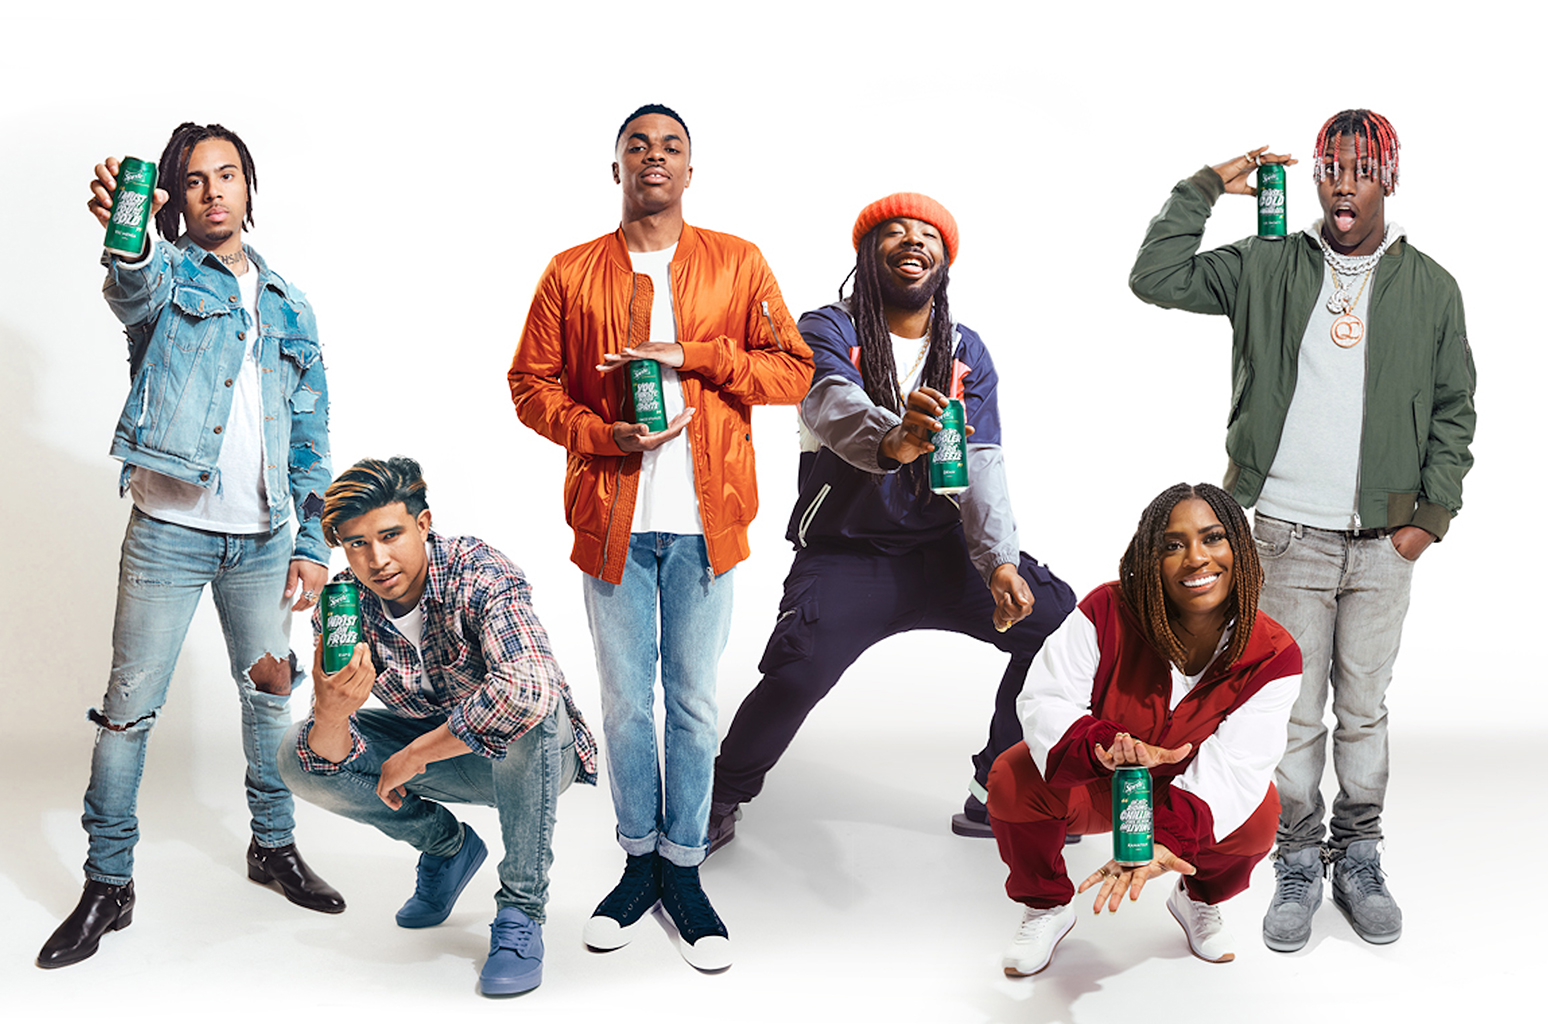 Lil Yachty, Vince Staples, Dram & More Team With Sprite For Summer Lyrics Campaign photo